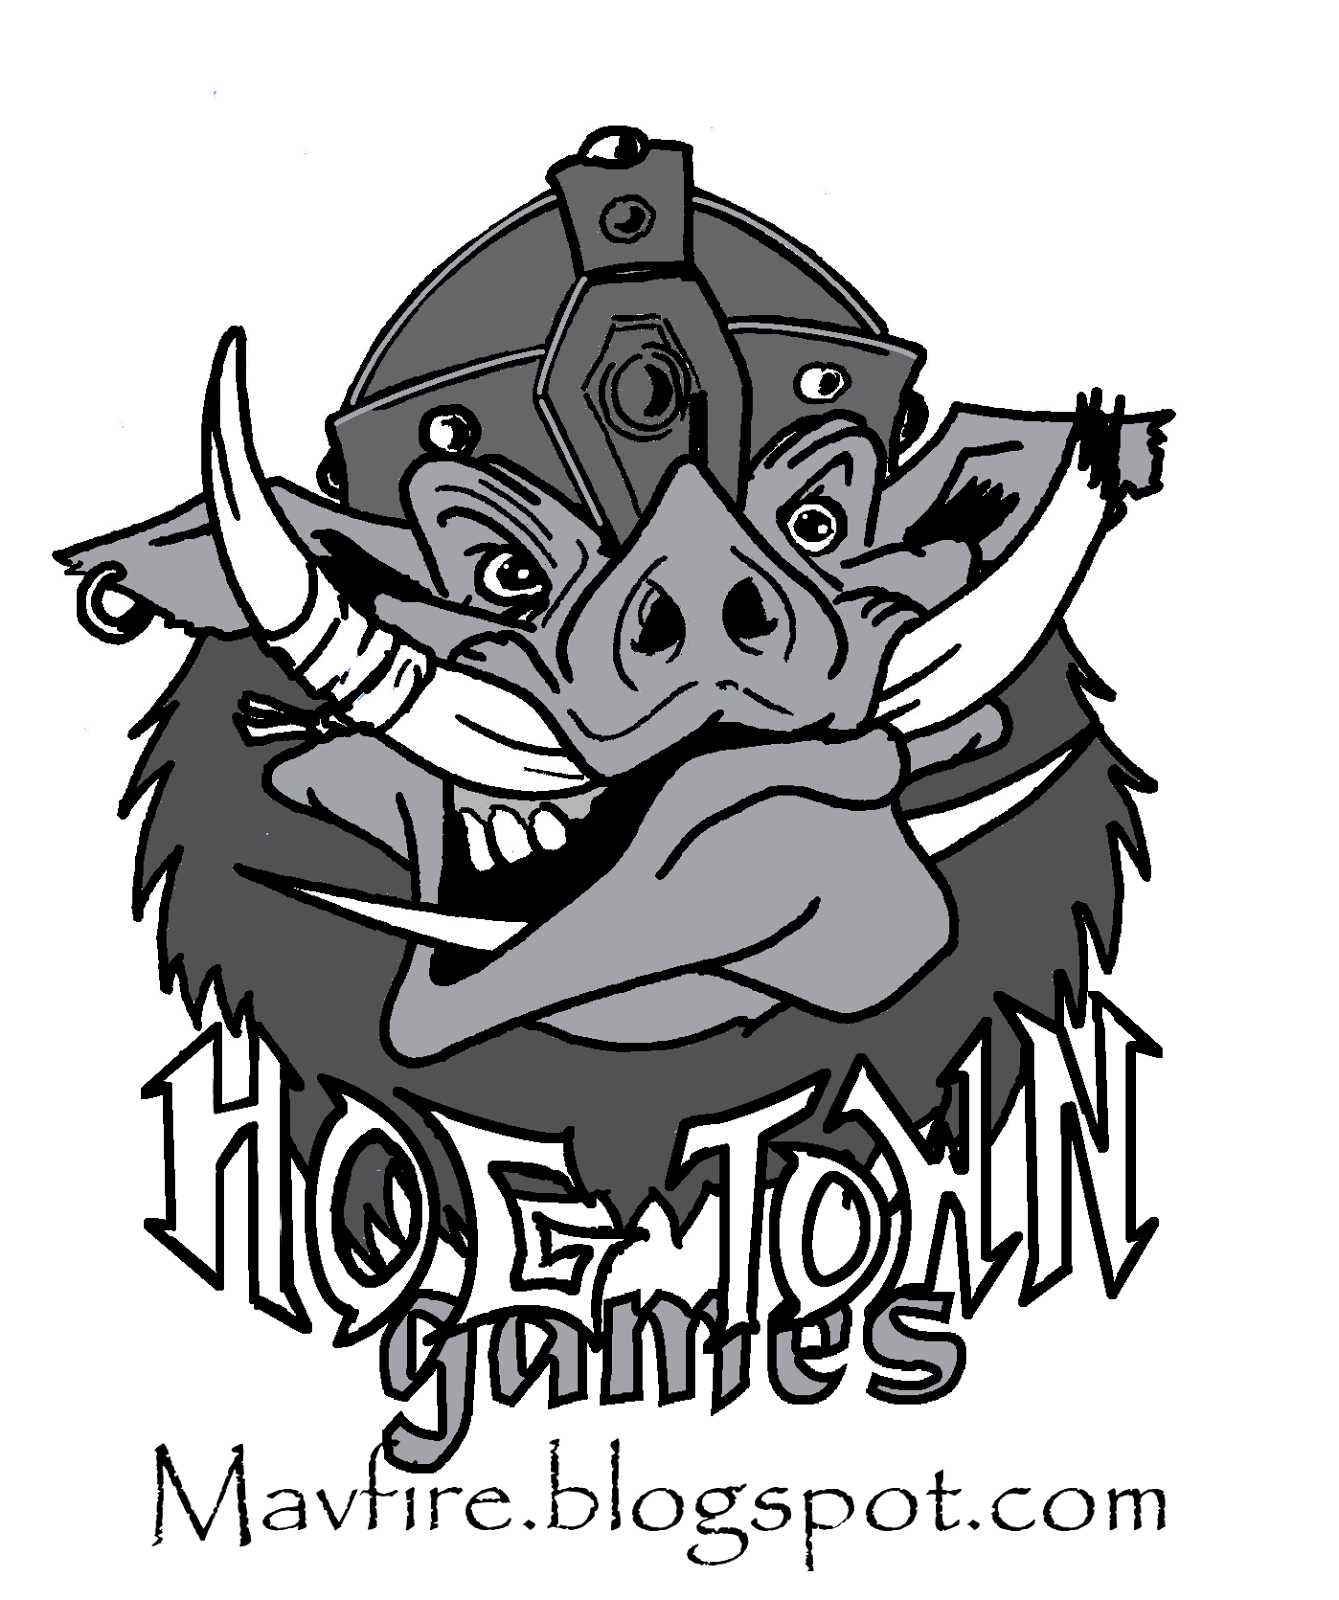 Hogtown web2 by Del Teigeler, Mavfire